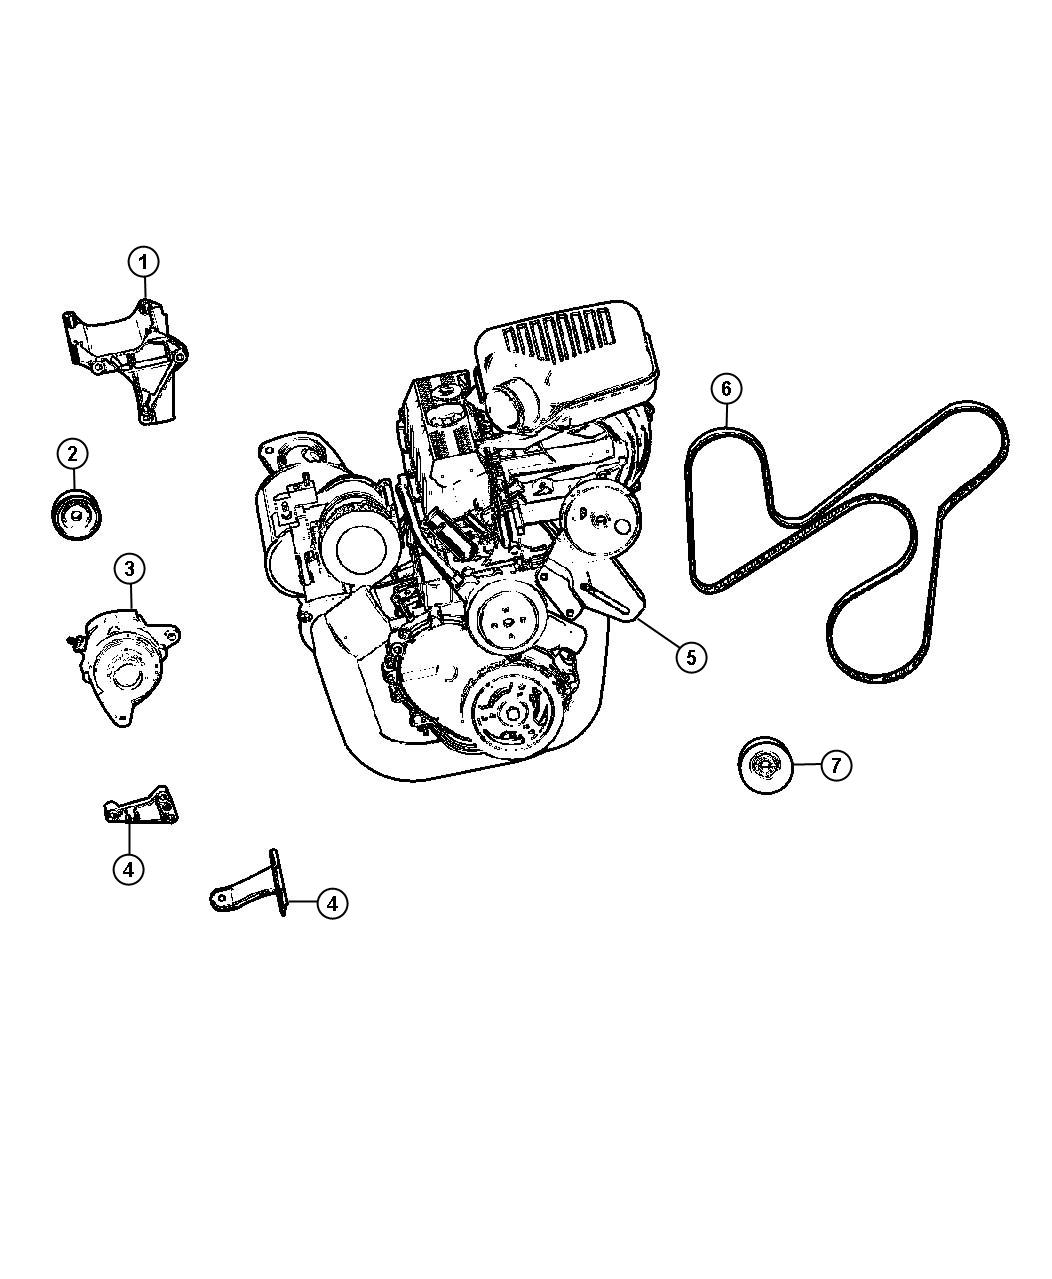 Chrysler 300 Starter Wiring Diagram moreover Camshaft Sensor Location 2004 Durango together with Chrysler 300 Starter Wiring Diagram also Dodge Durango Battery Location further Highlander Water Pump Replacement. on timing chain diagram likewise 1999 dodge stratus fuse box